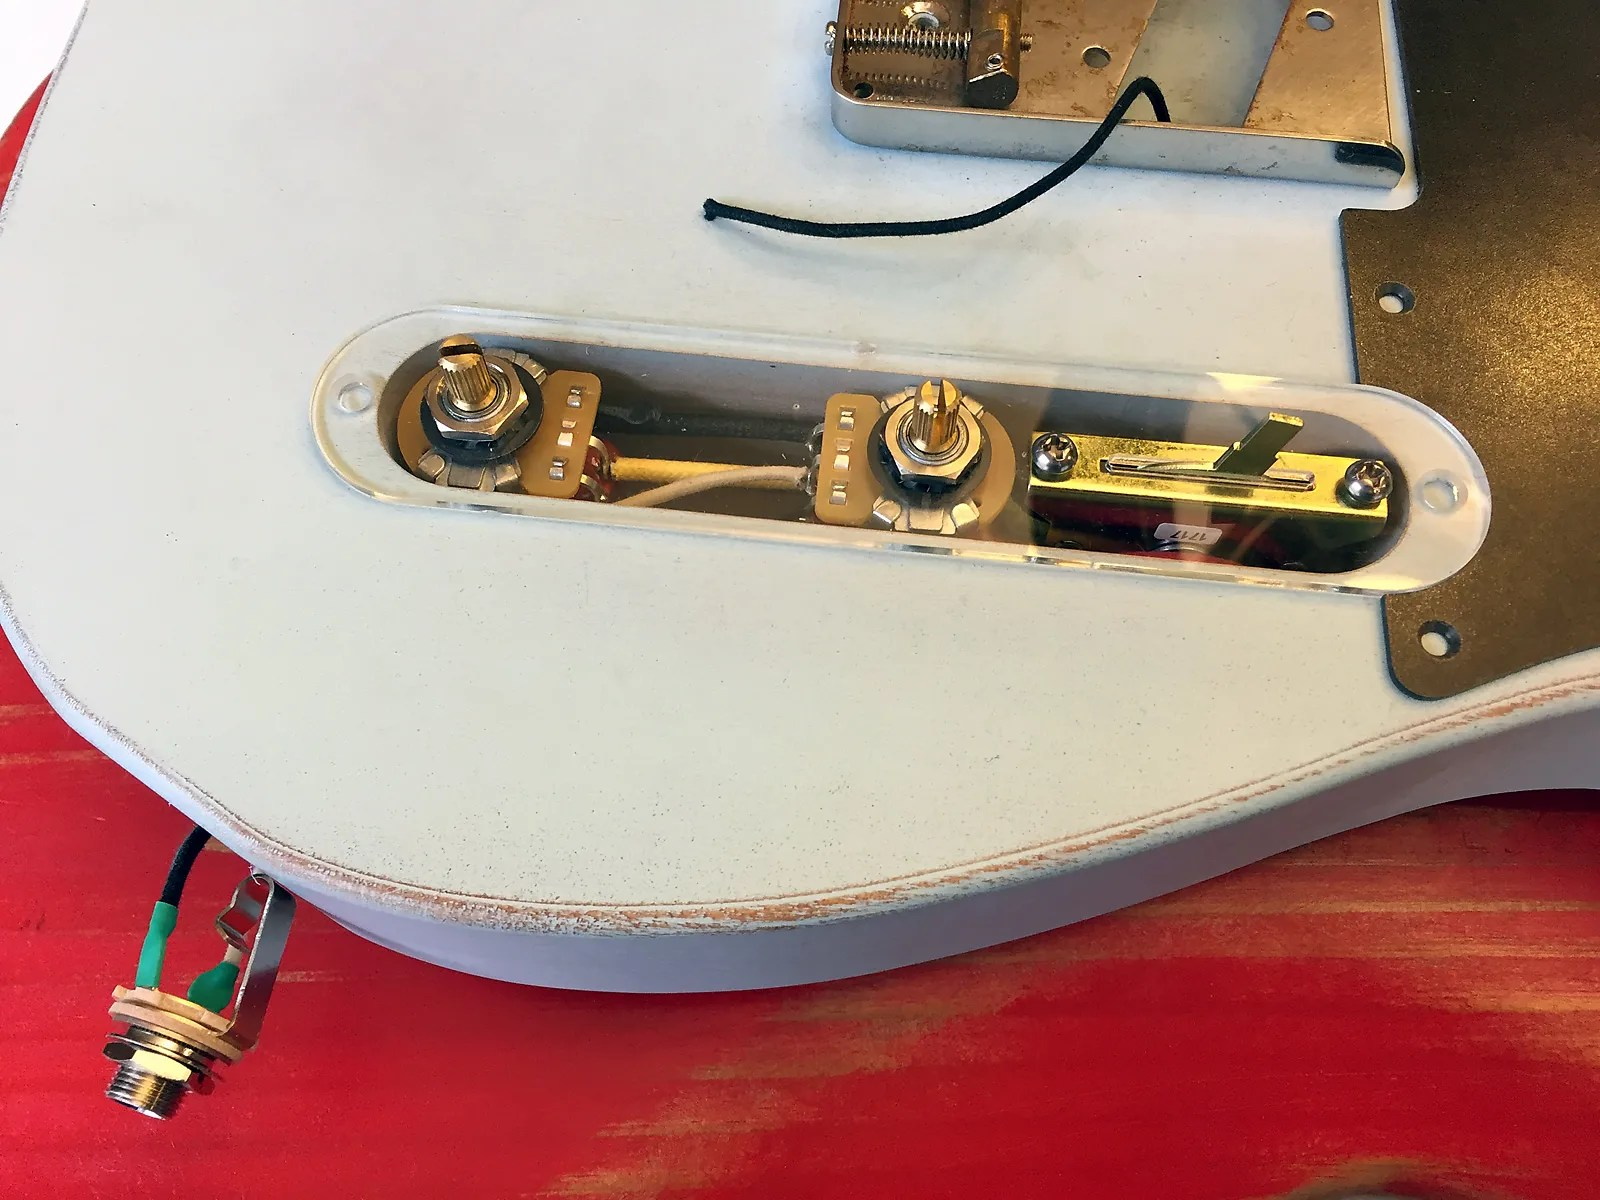 hight resolution of prewired esquire 4 way wiring harness modified eldred cocked wah wainwright customs